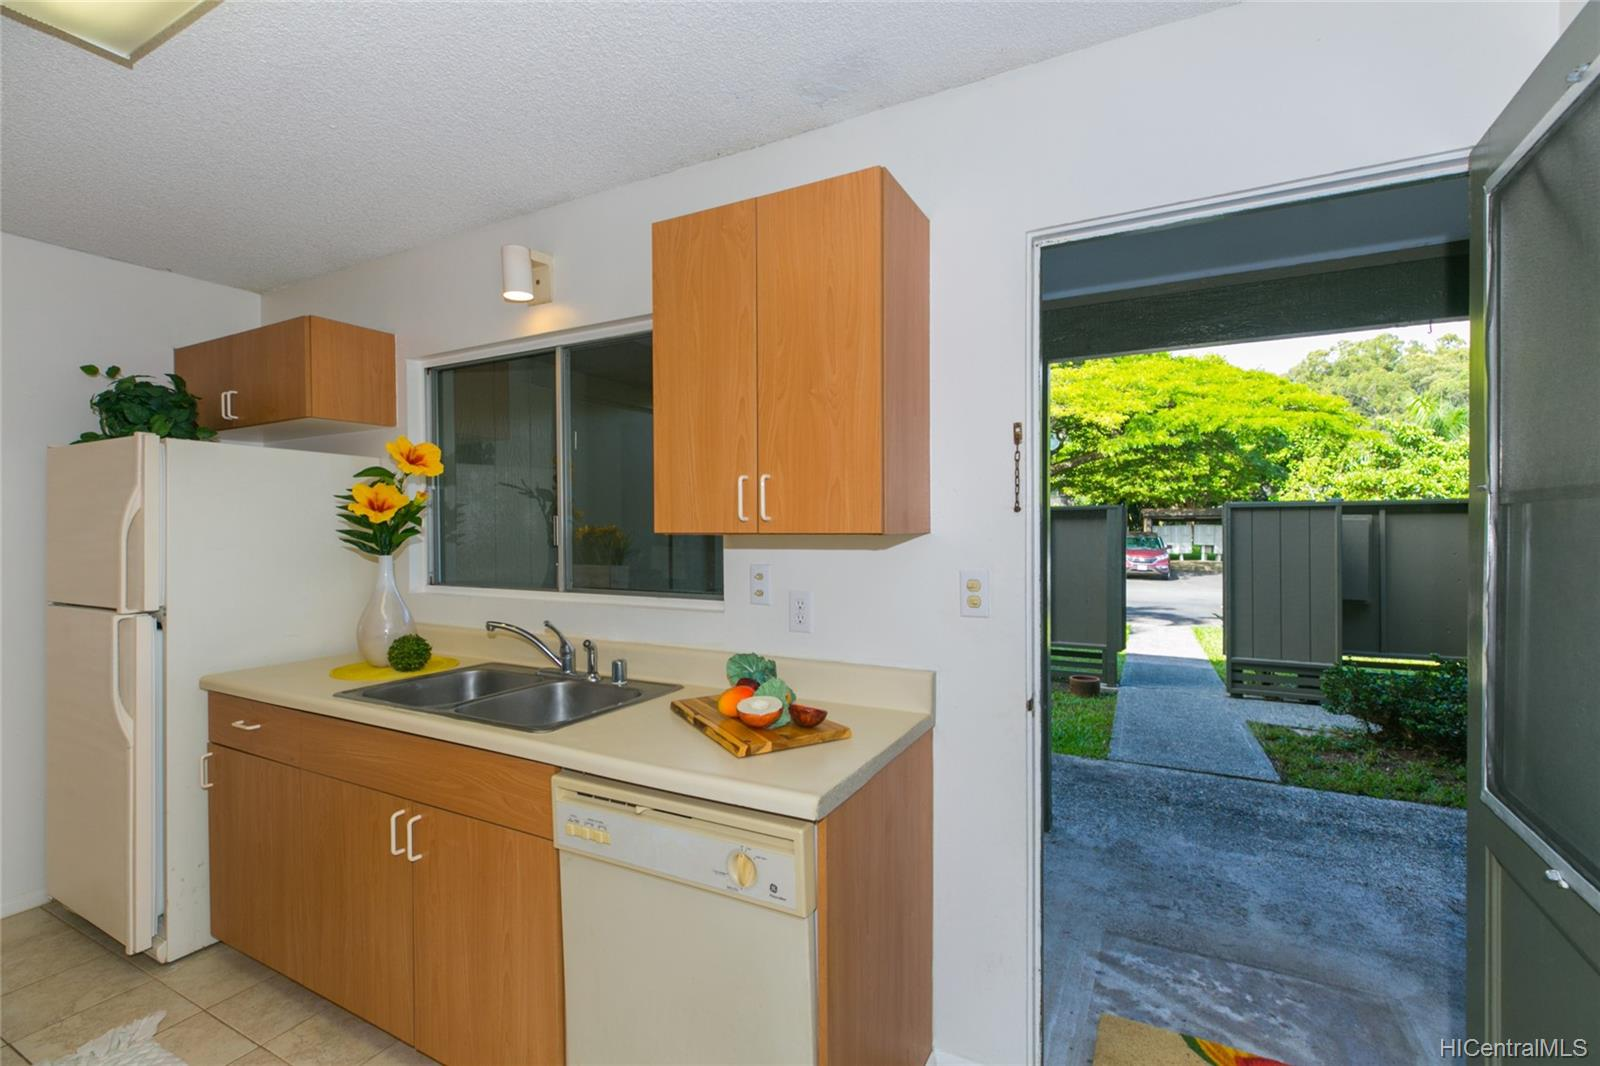 Club View Gardens 2 47-736 Hui Kelu Street  Unit 6/605